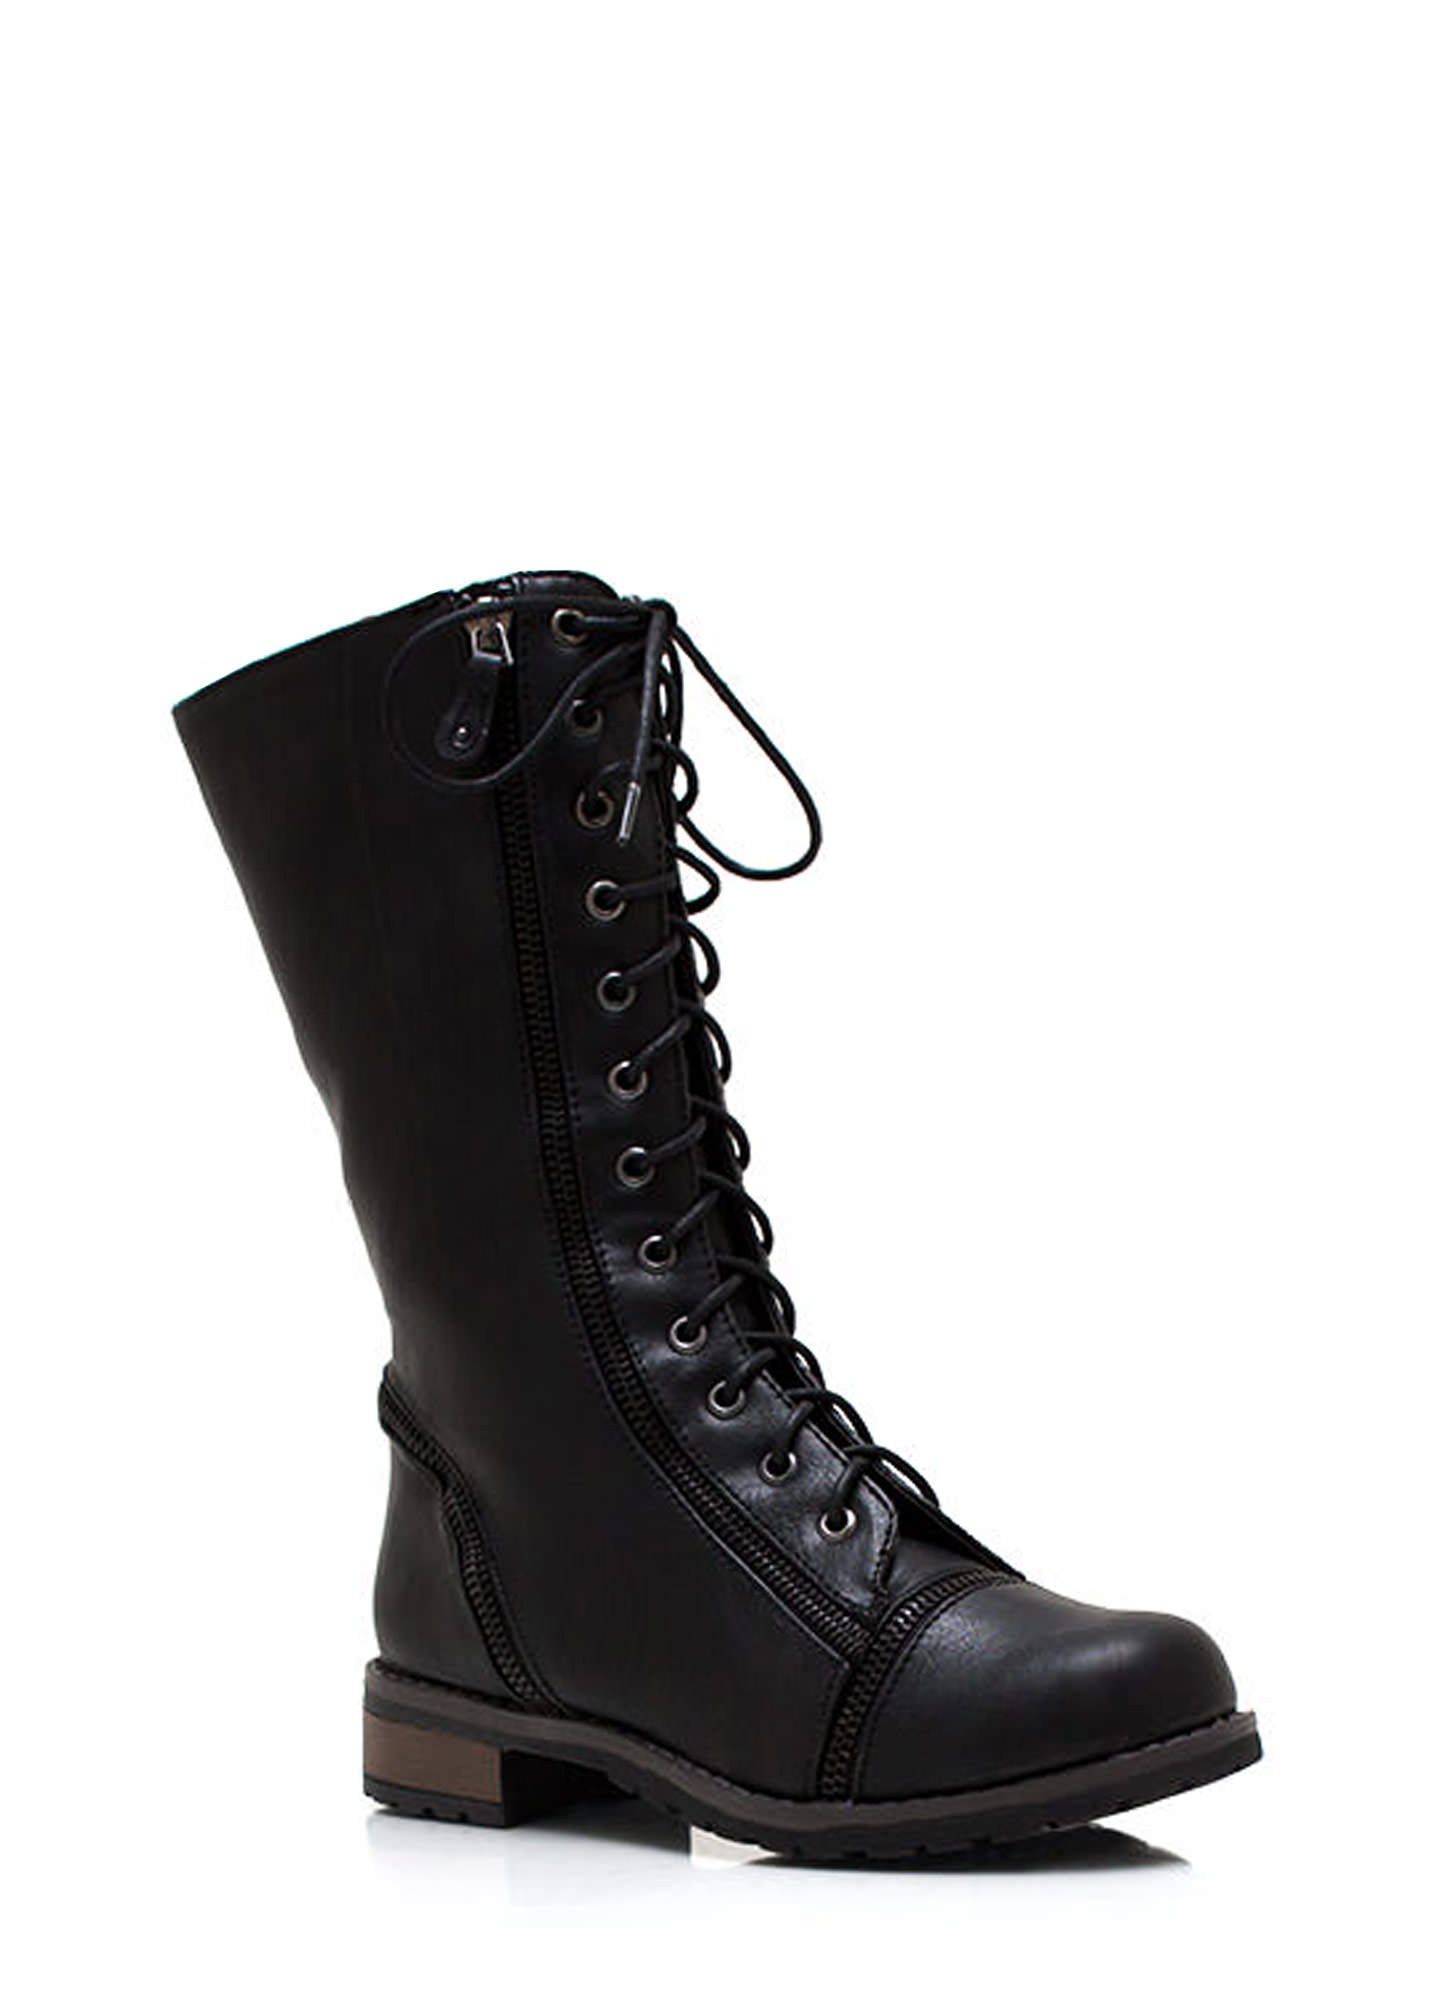 Lips Are Zipped Combat Boots BLACK